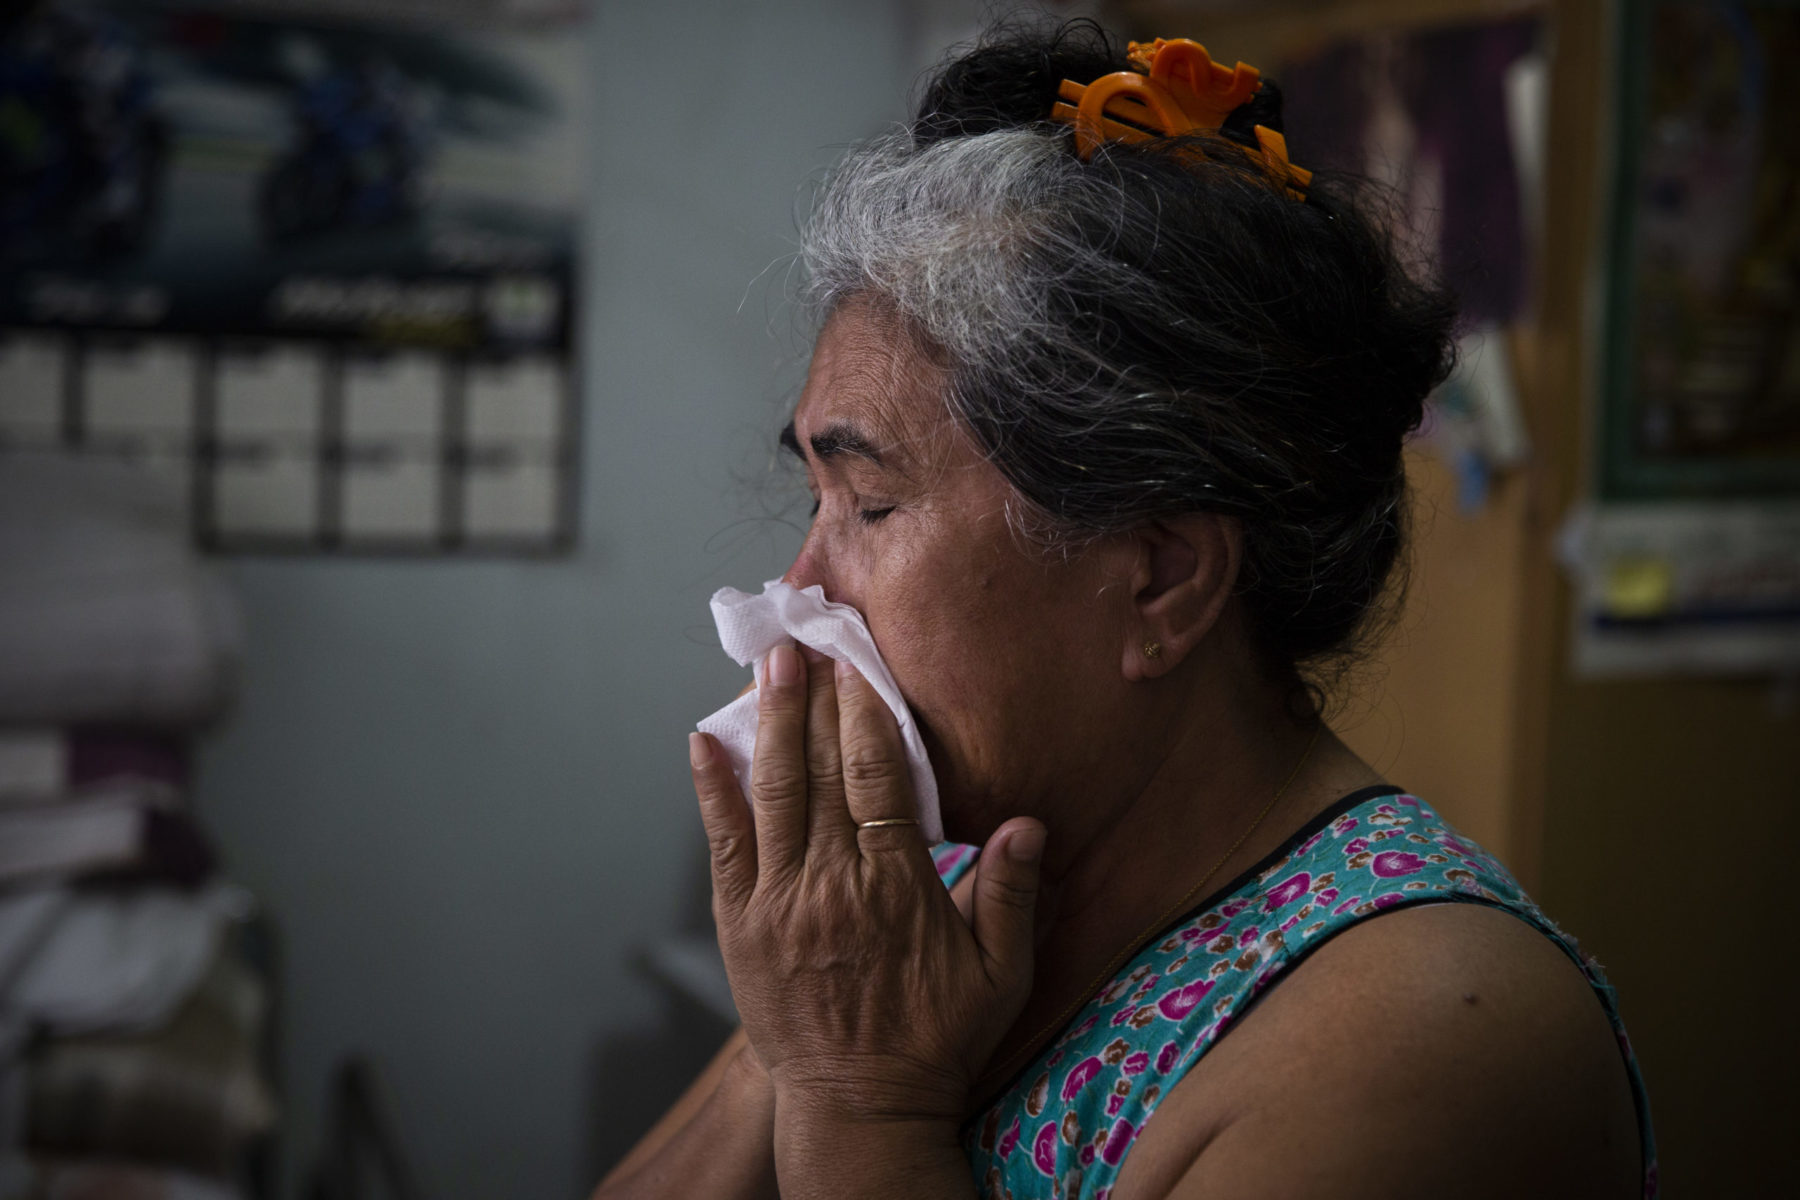 An emotional mother holds a tissue to her face in her home.